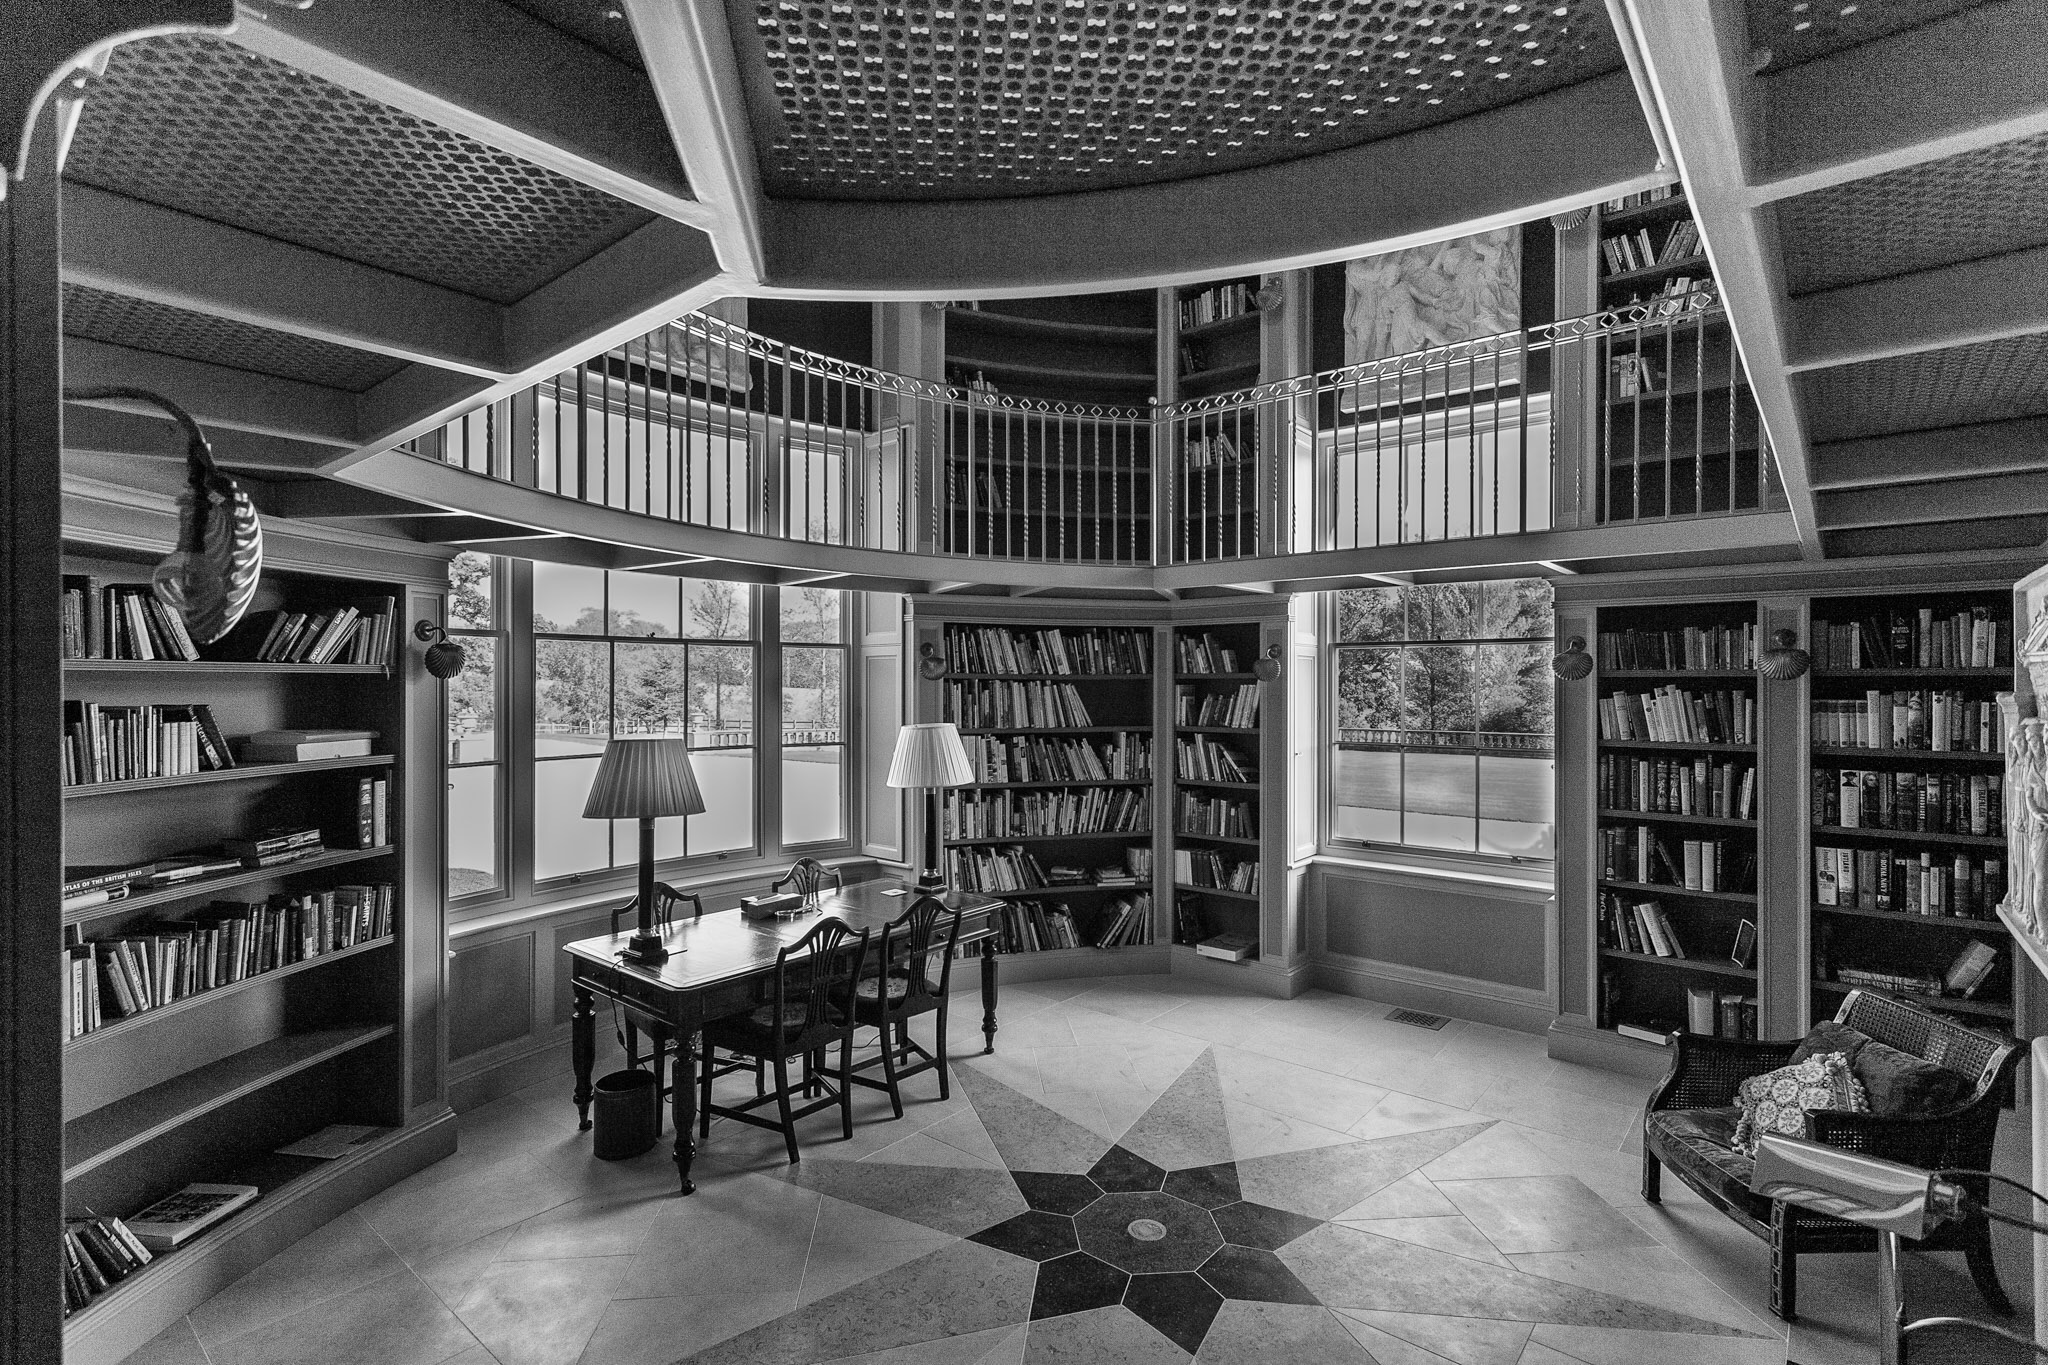 A new private library, Dorset. Stunning interior space.